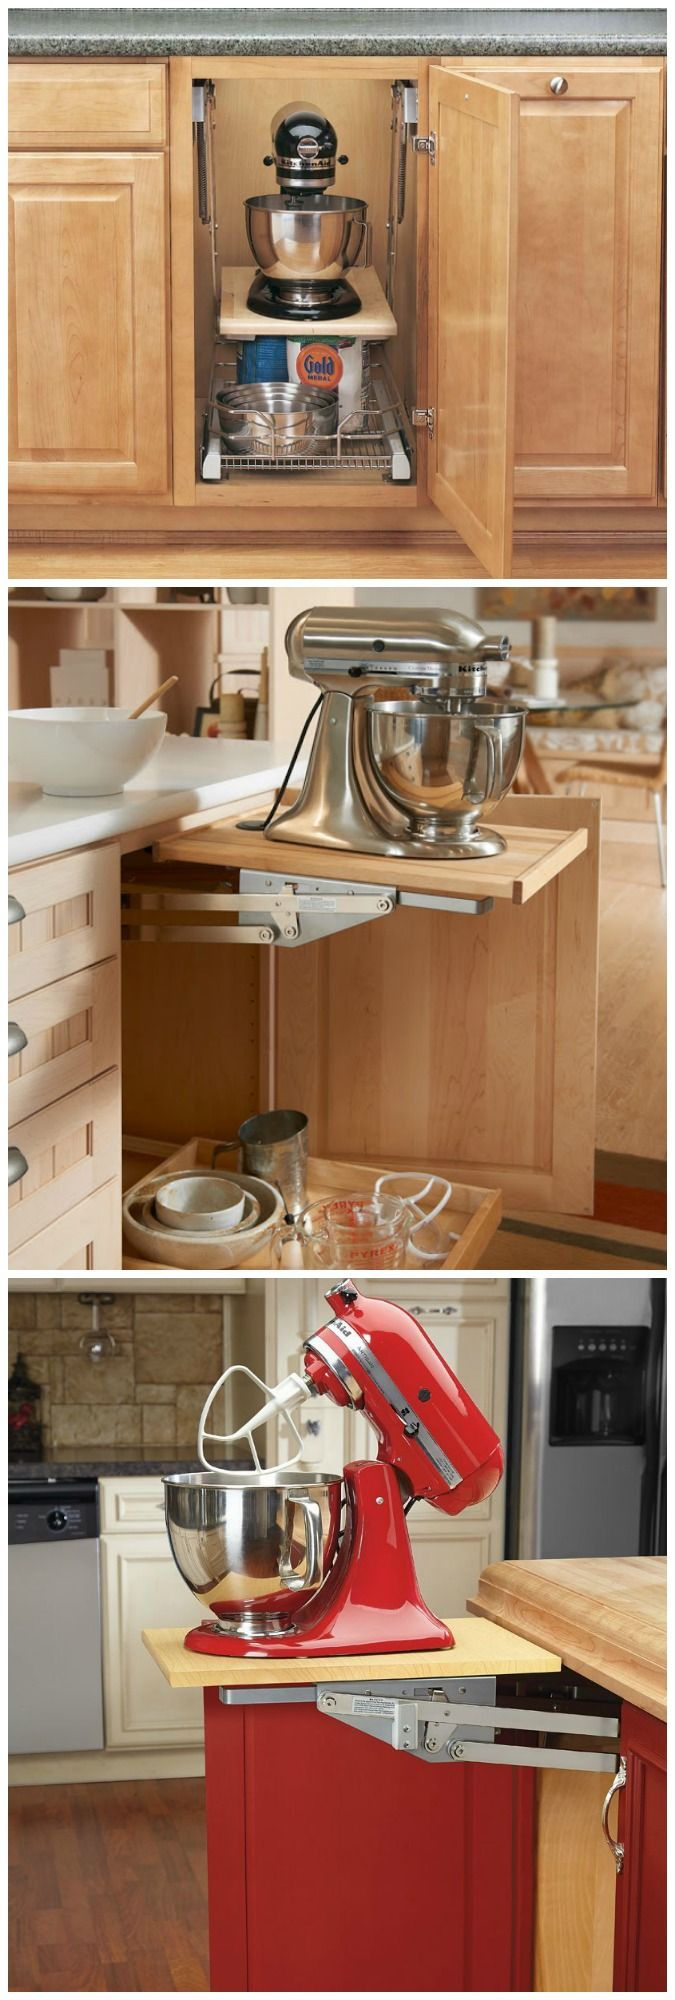 Uncategorized Seconds Kitchen Appliances best 25 appliance cabinet ideas on pinterest garage rev a shelf lift unique storage solution for your heavy duty appliances